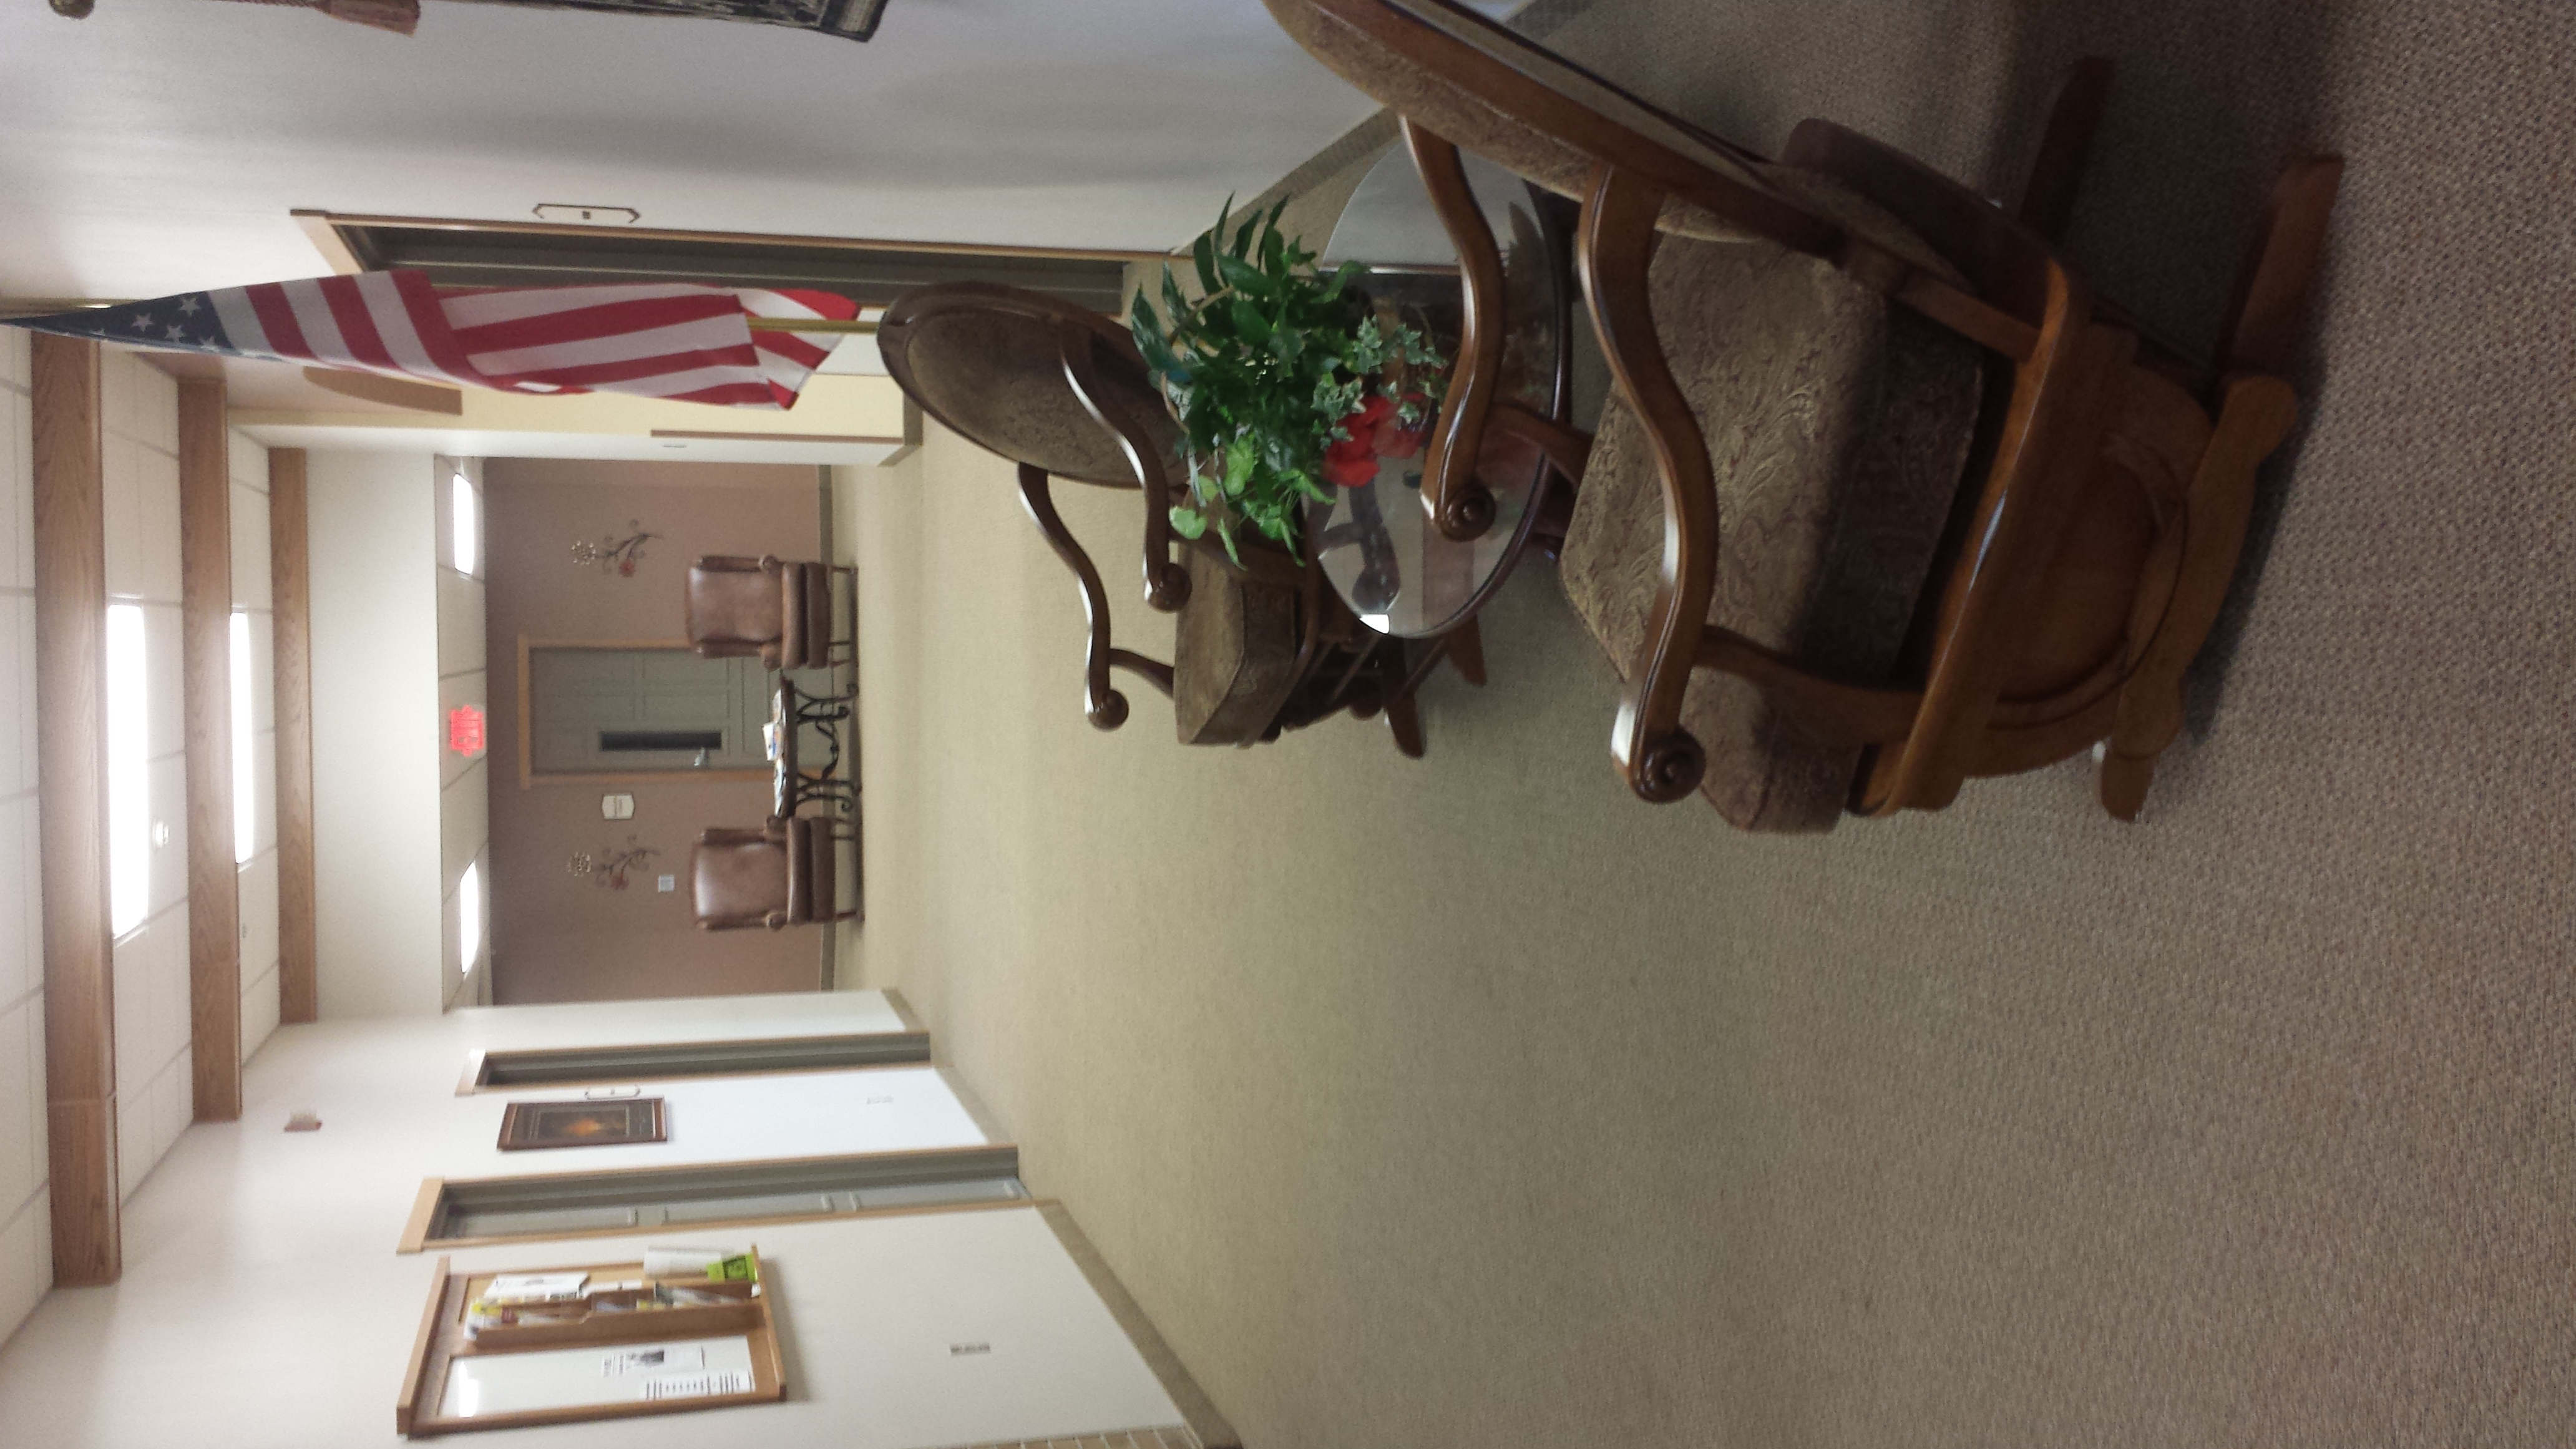 Lakeview Assisted Living hallway